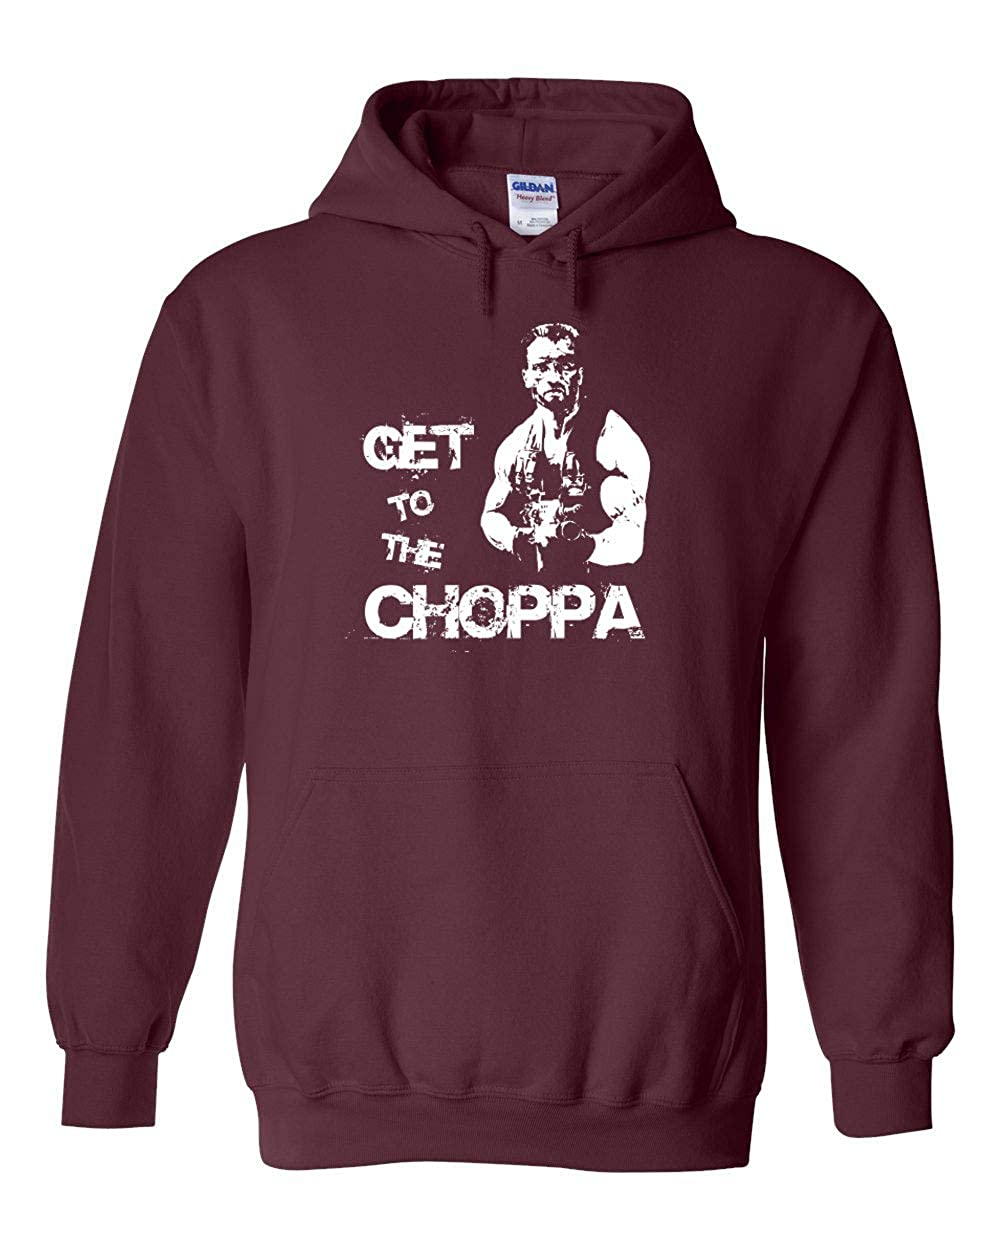 Swaffy Tees 43 Get to The Choppa Funny Hooded Sweatshirt